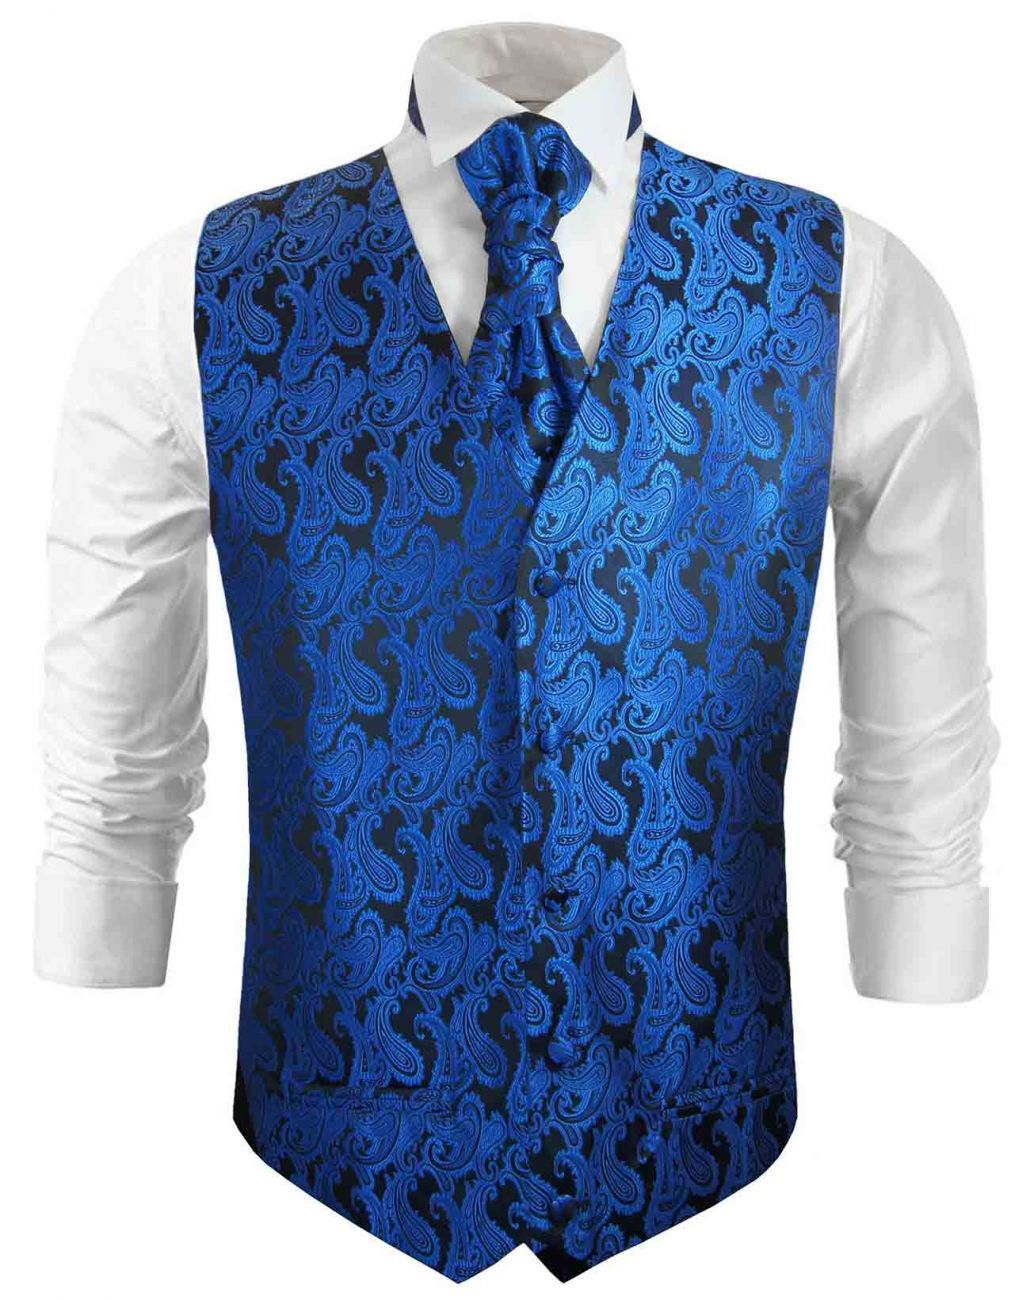 Blue black paisley wedding vest waistcoat with cravat